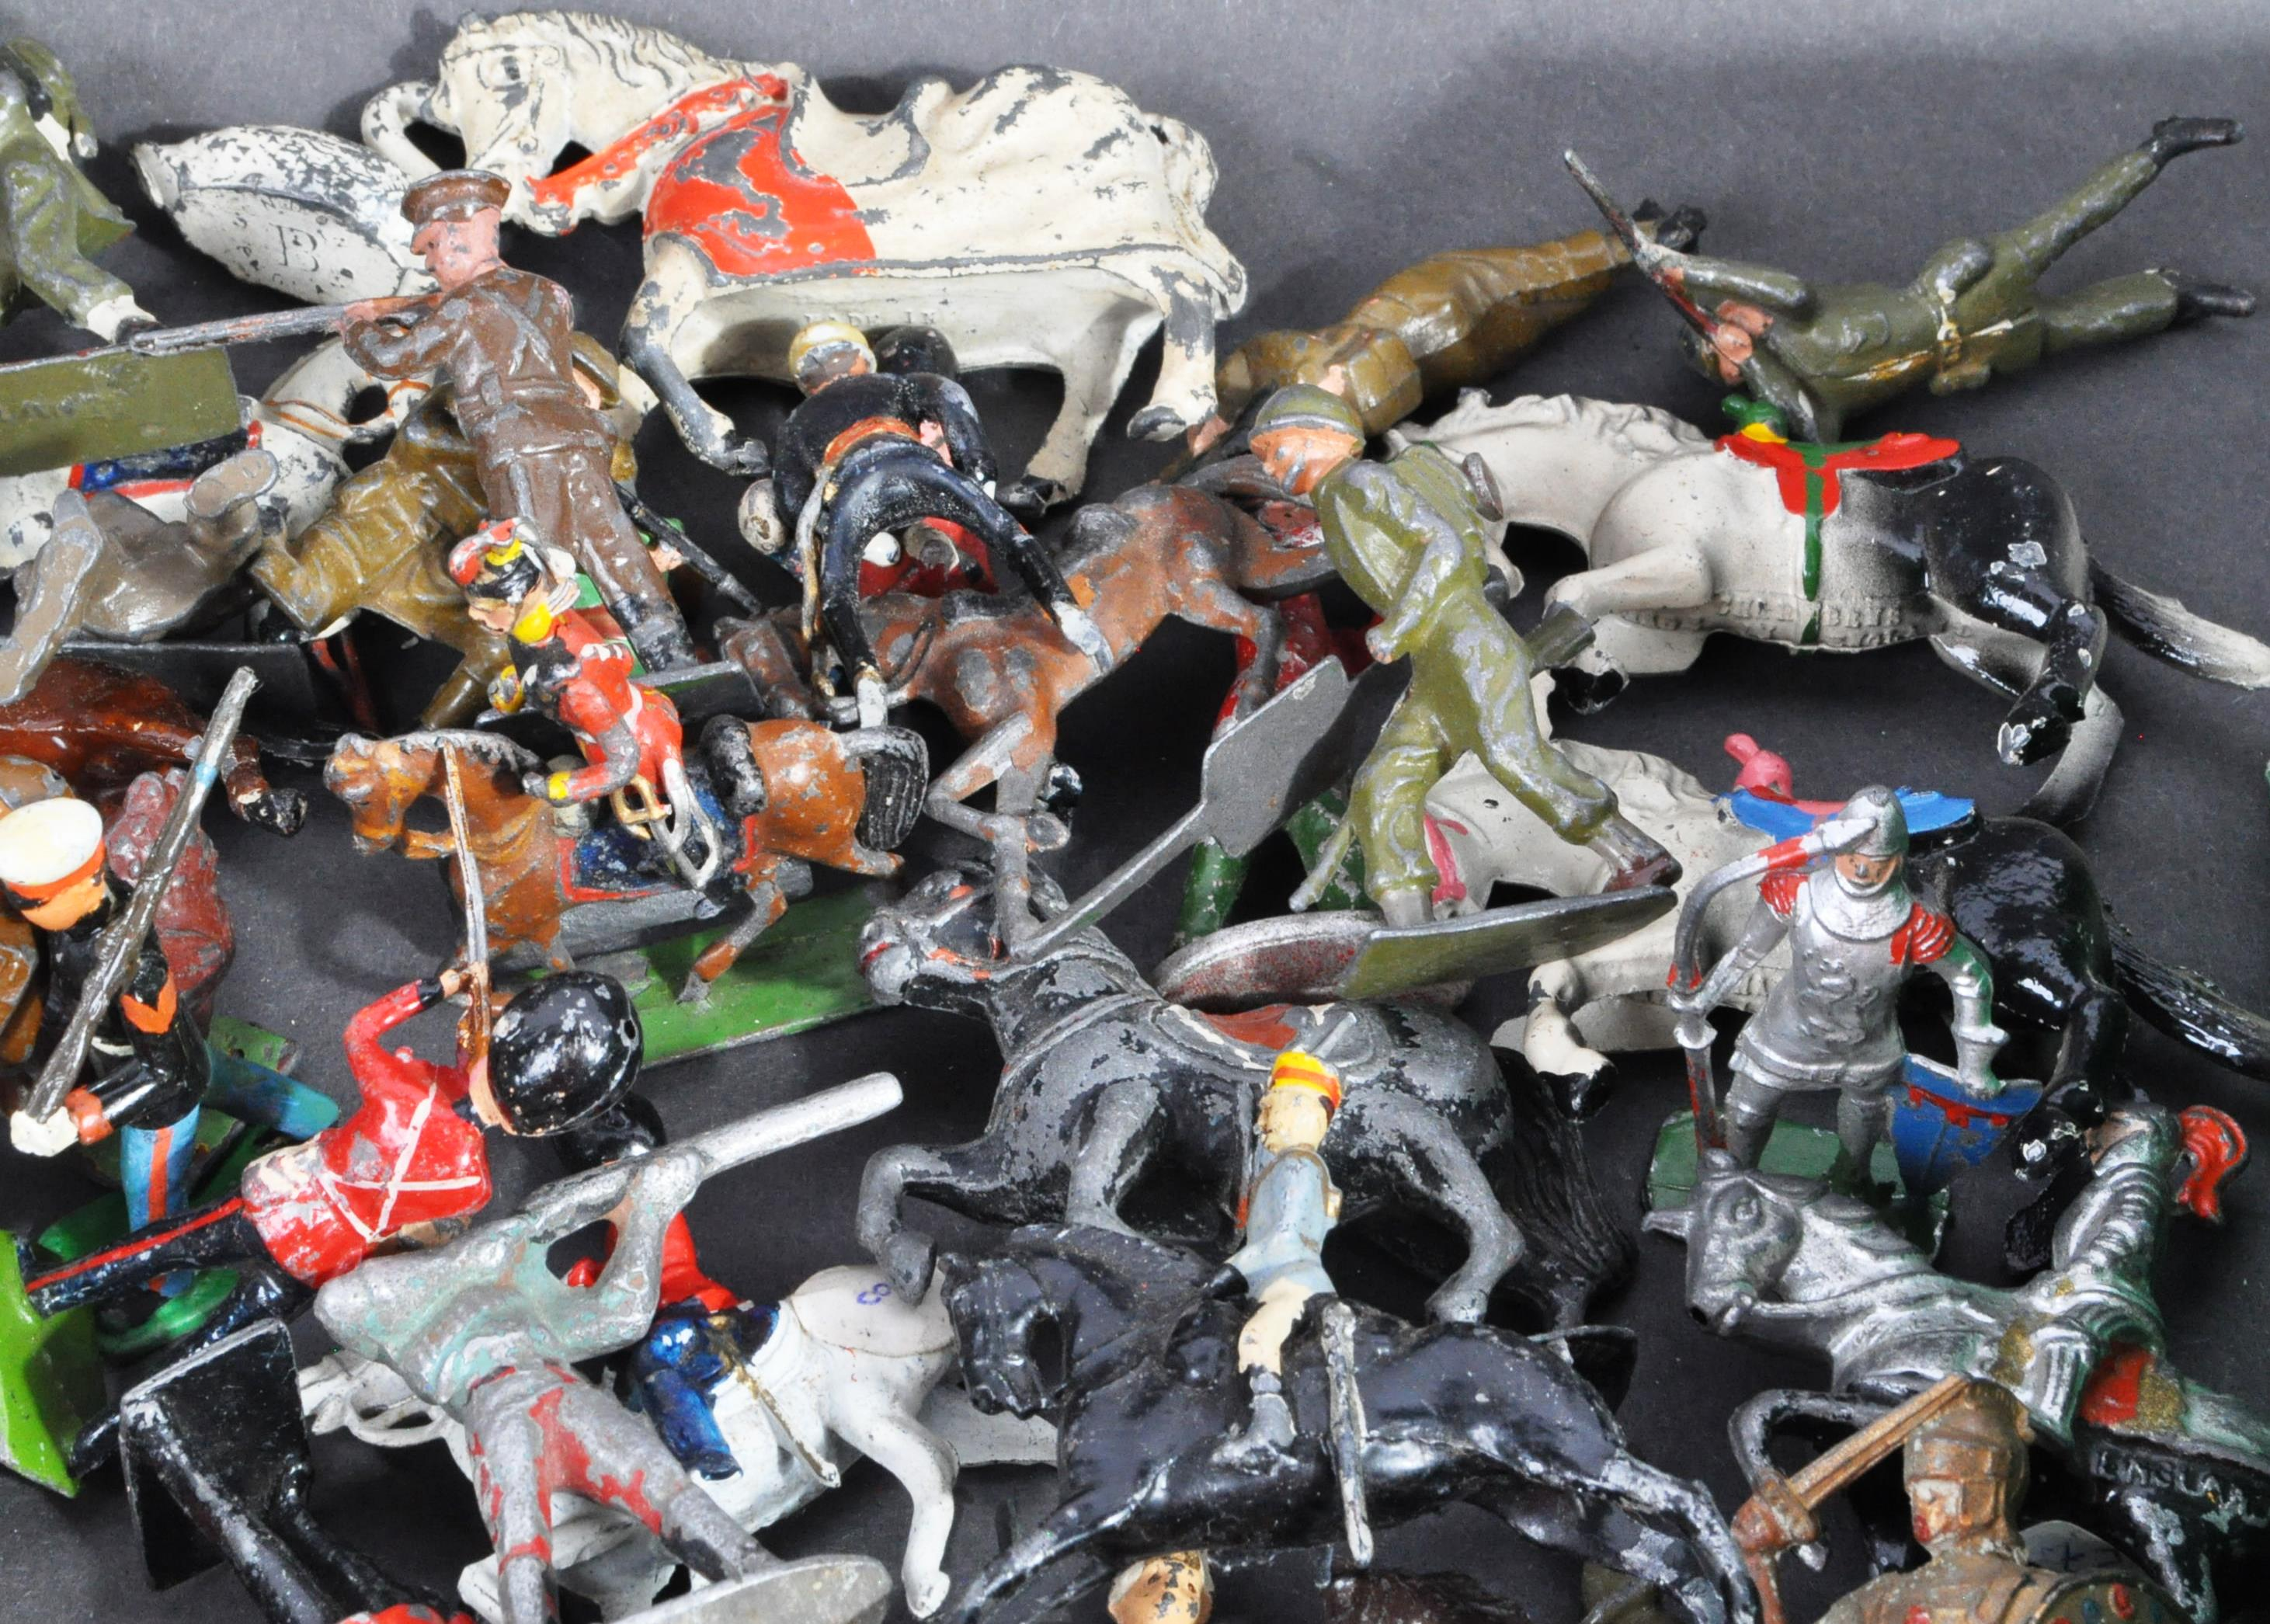 LEAD SOLDIERS - LARGE COLLECTION OF VINTAGE LEAD SOLDIERS - Image 5 of 7